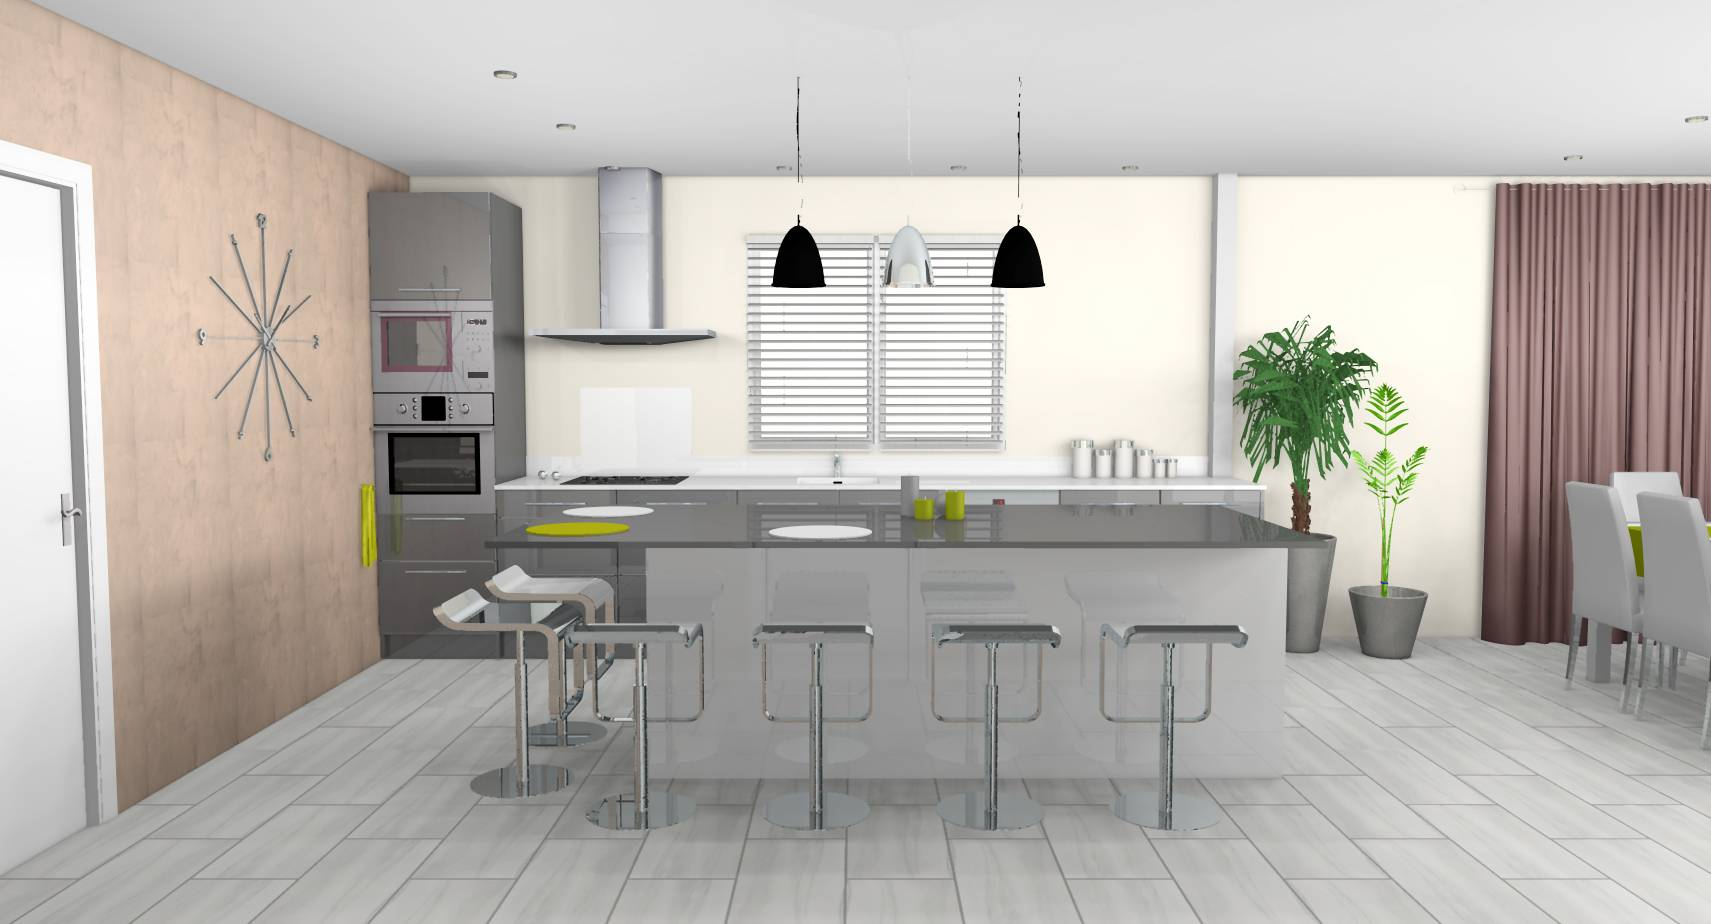 D co cuisine americaine design - Decoration de cuisine moderne ...